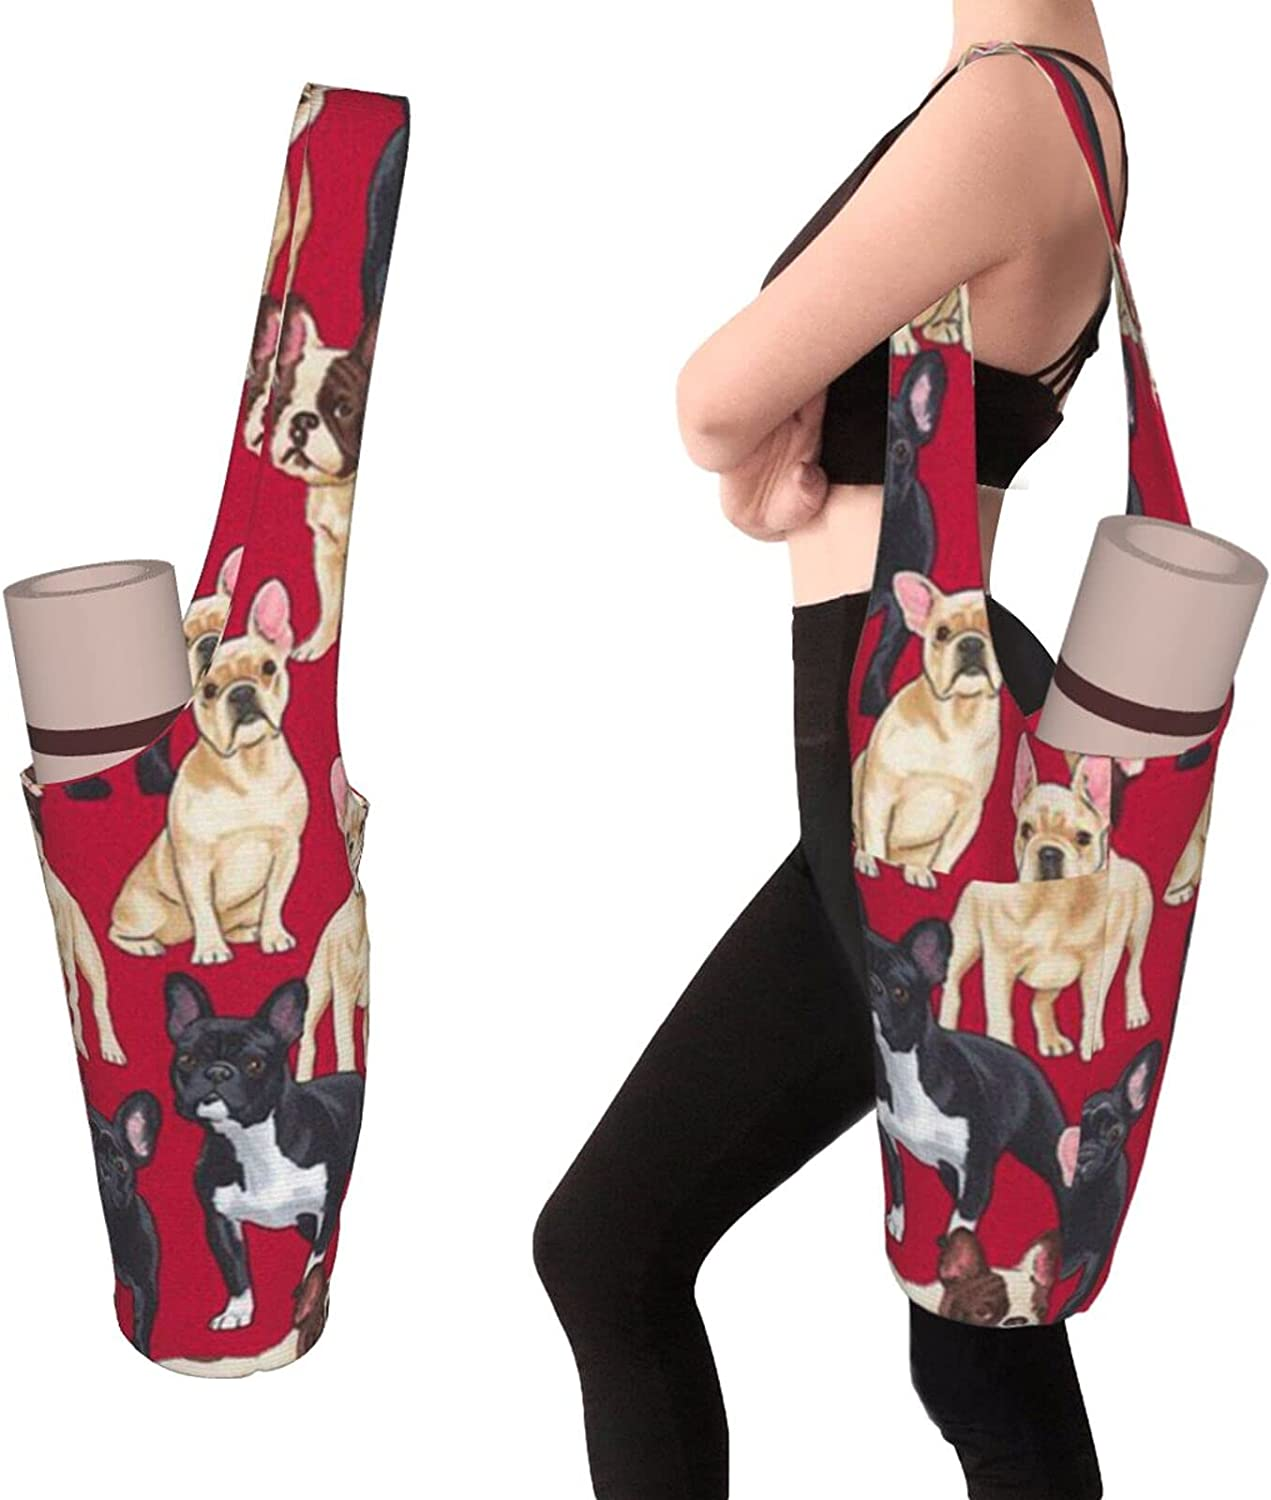 Dog Lovely Red Yoga Mat Bag - Large Max 60% OFF Zippe Pocket and sale with Size